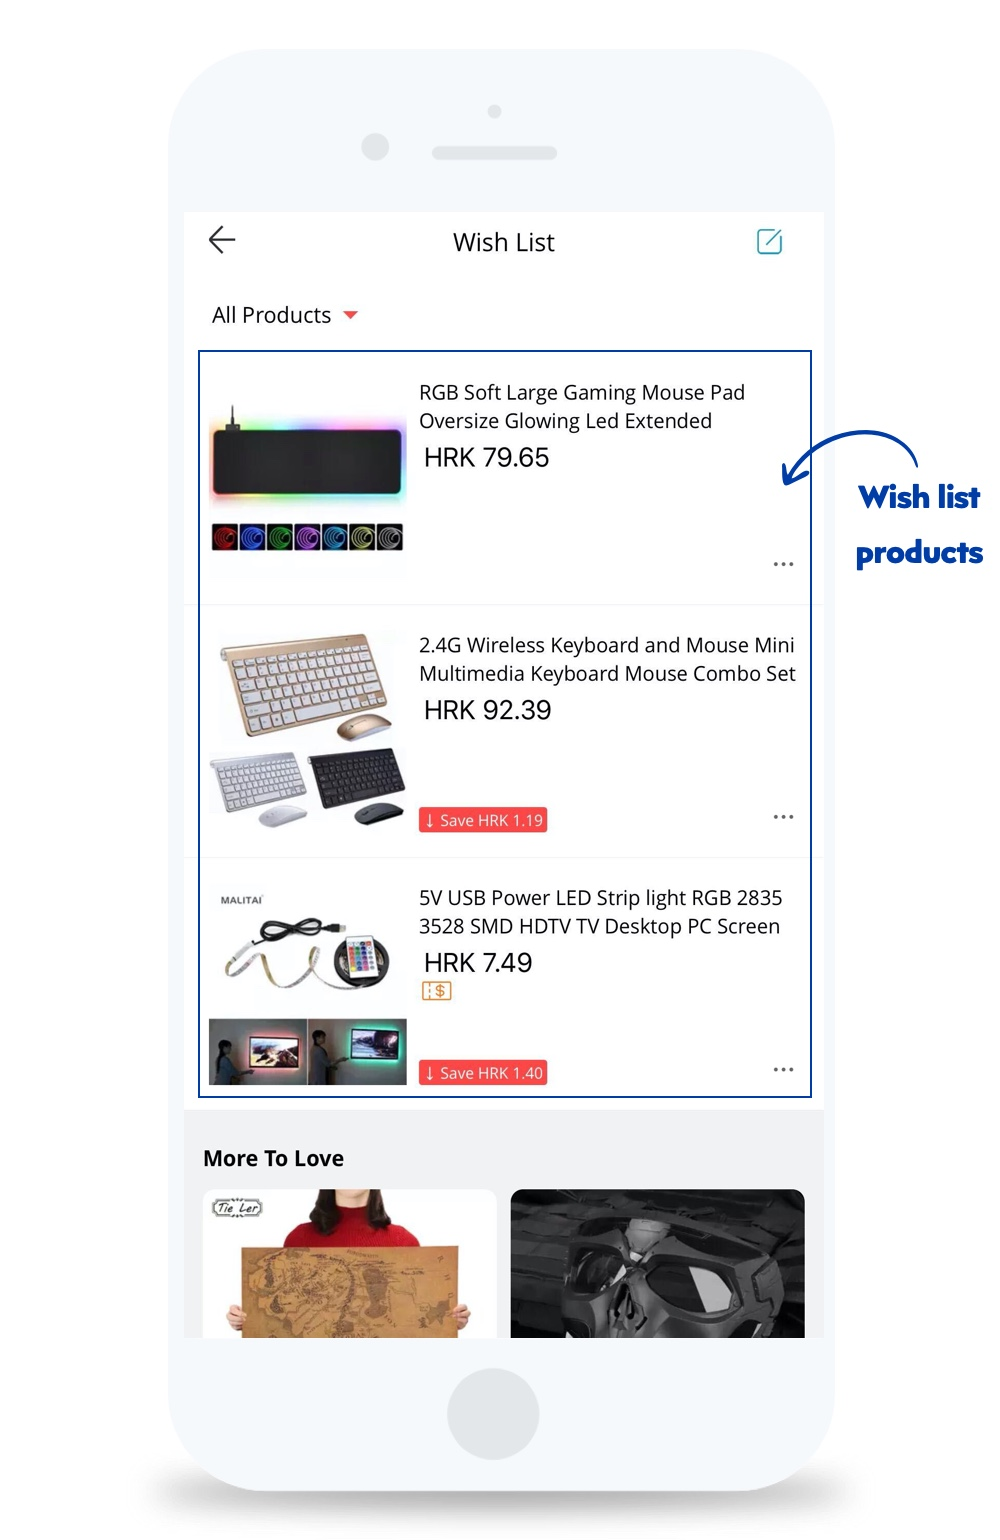 wishlist products in ecommerce mobile apps